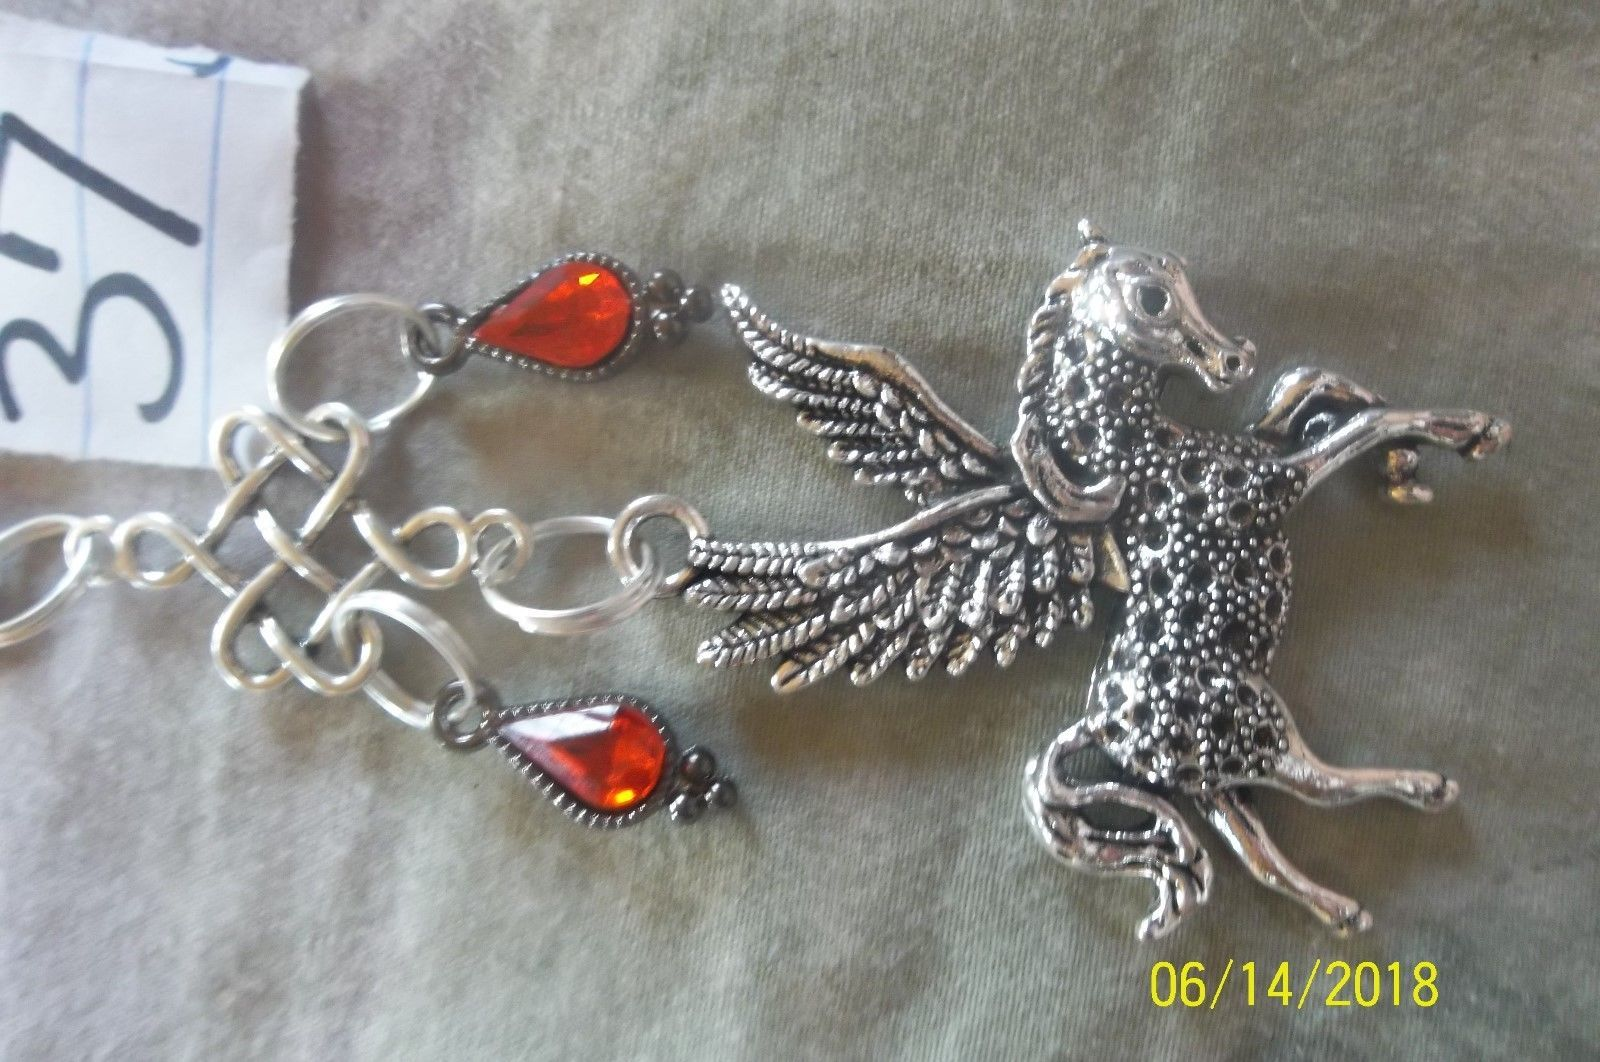 purse jewlrey pegasus unicorn beauty keychain backpack filigree dangle charm #37 image 5